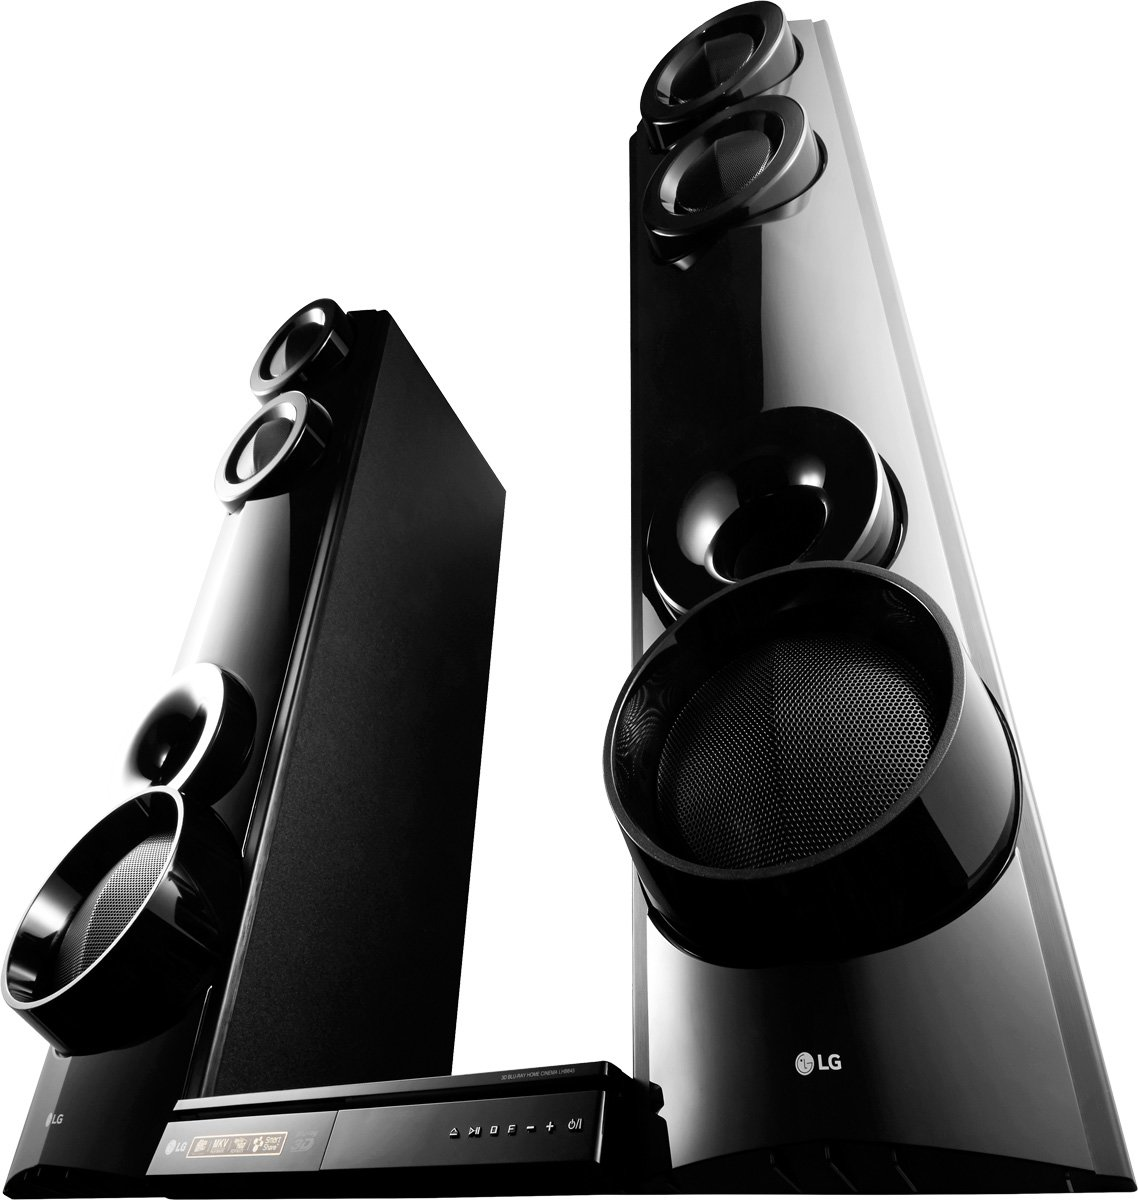 Lg 3d blu ray dvd home theater system / Download film action terbaru hd